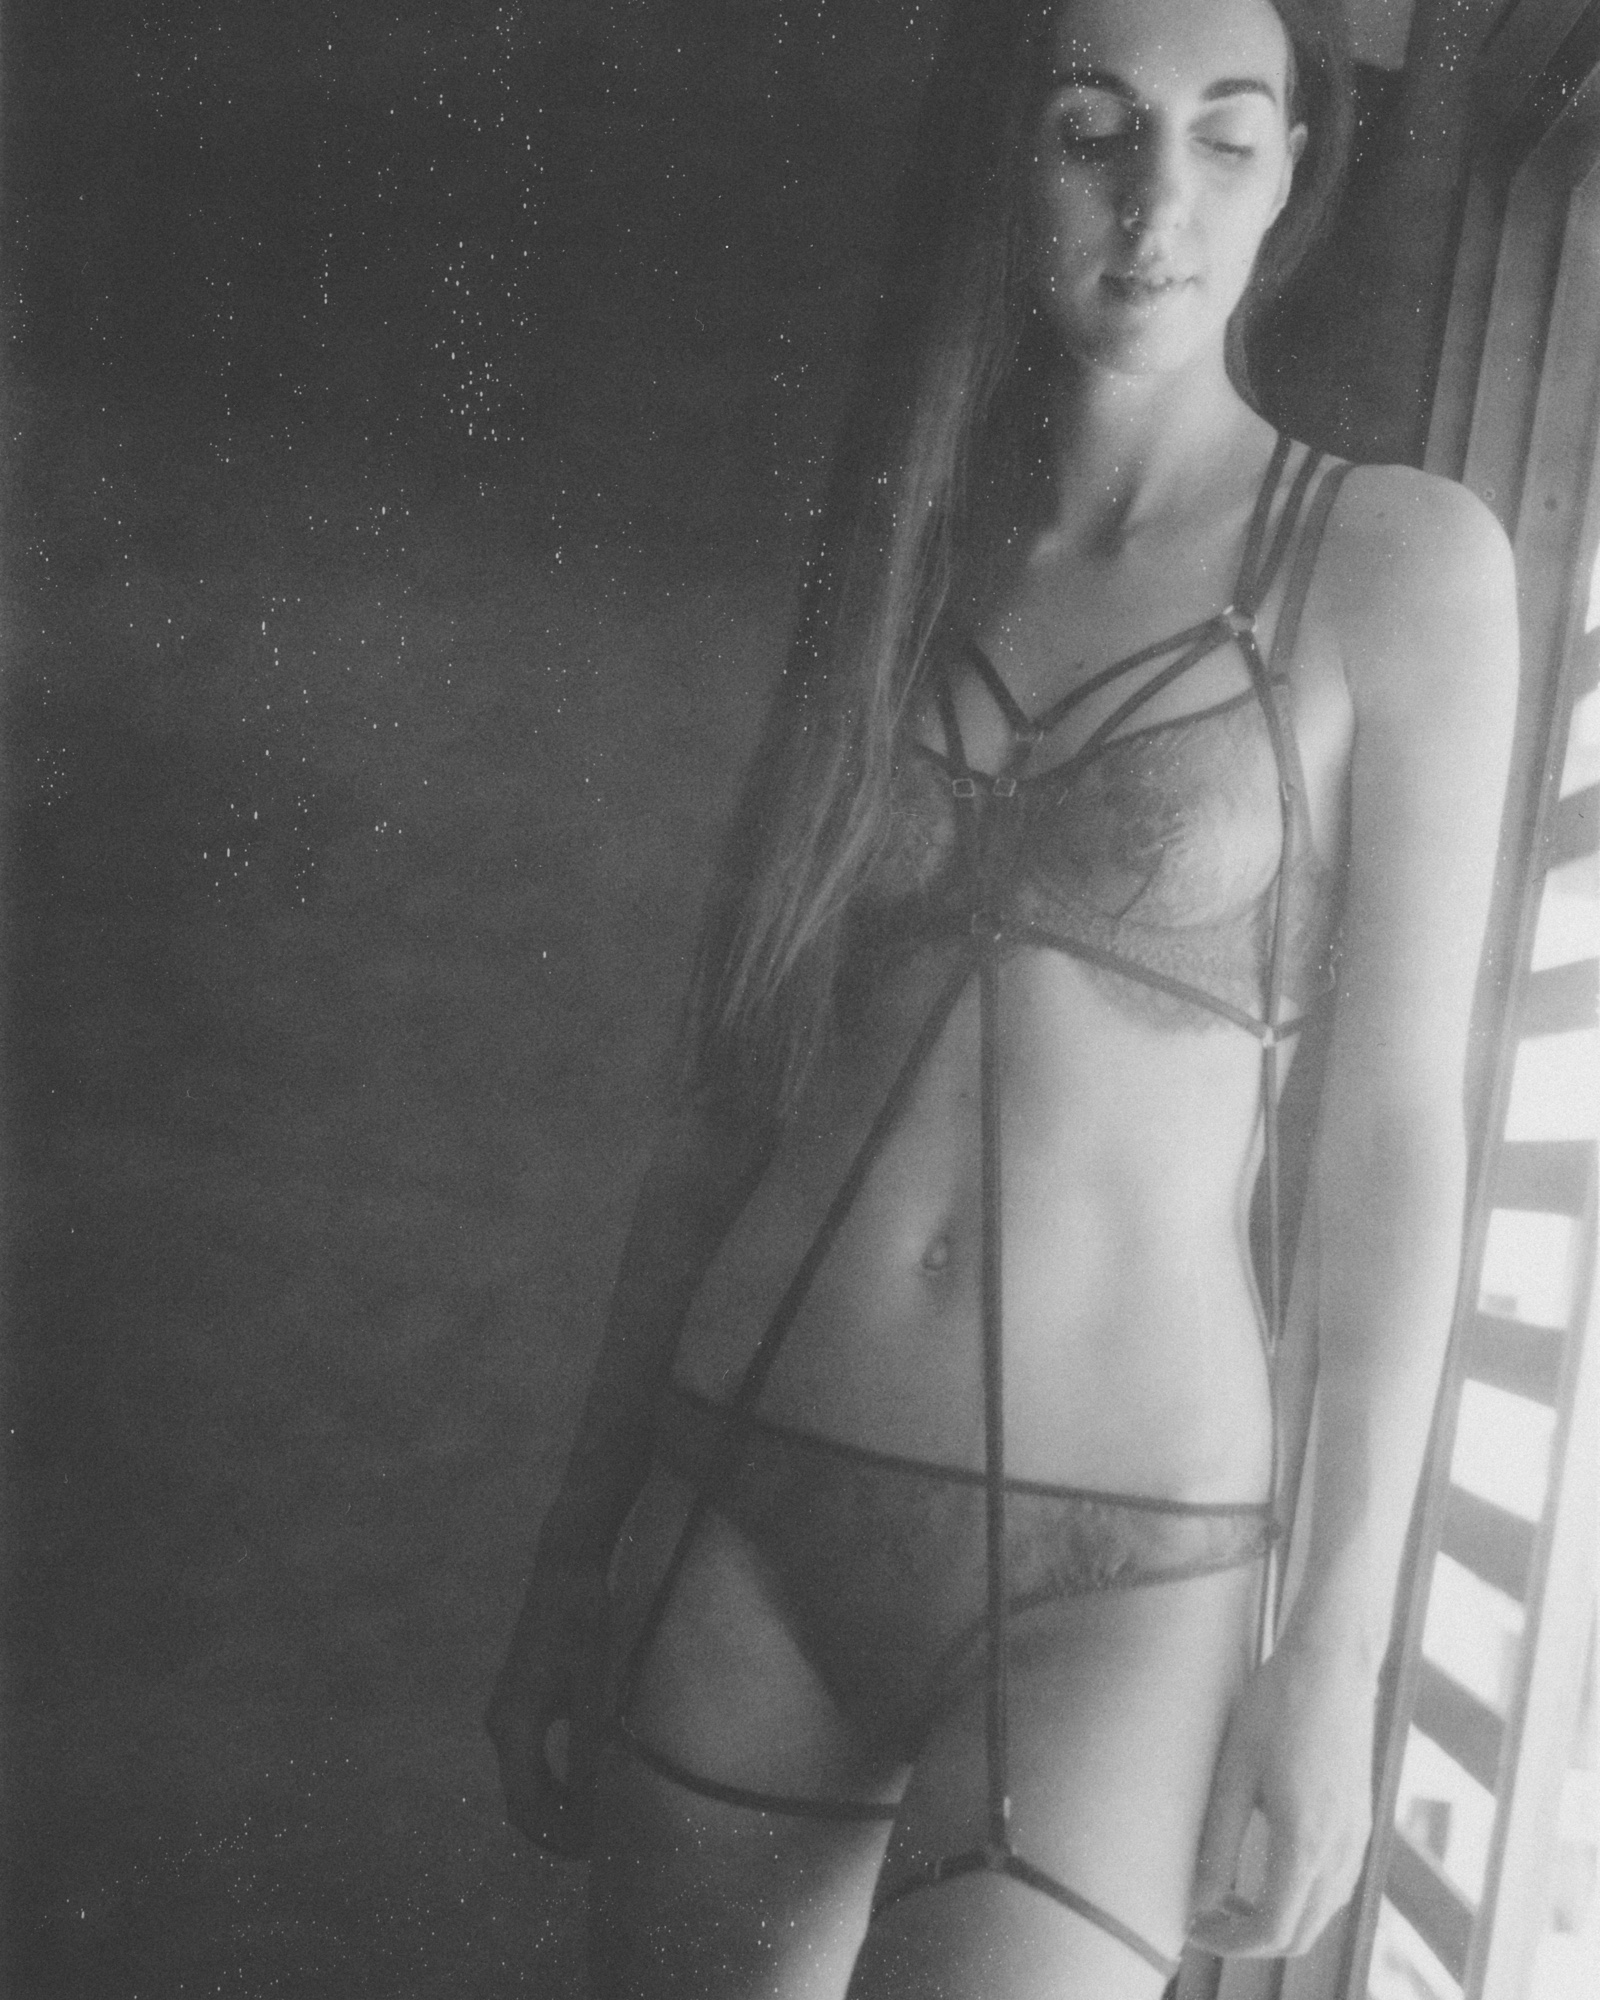 Lingerie photoshooting in Bangkok by Aaron Joel Santos, model Tanya Koycheva from Garterblog.ru